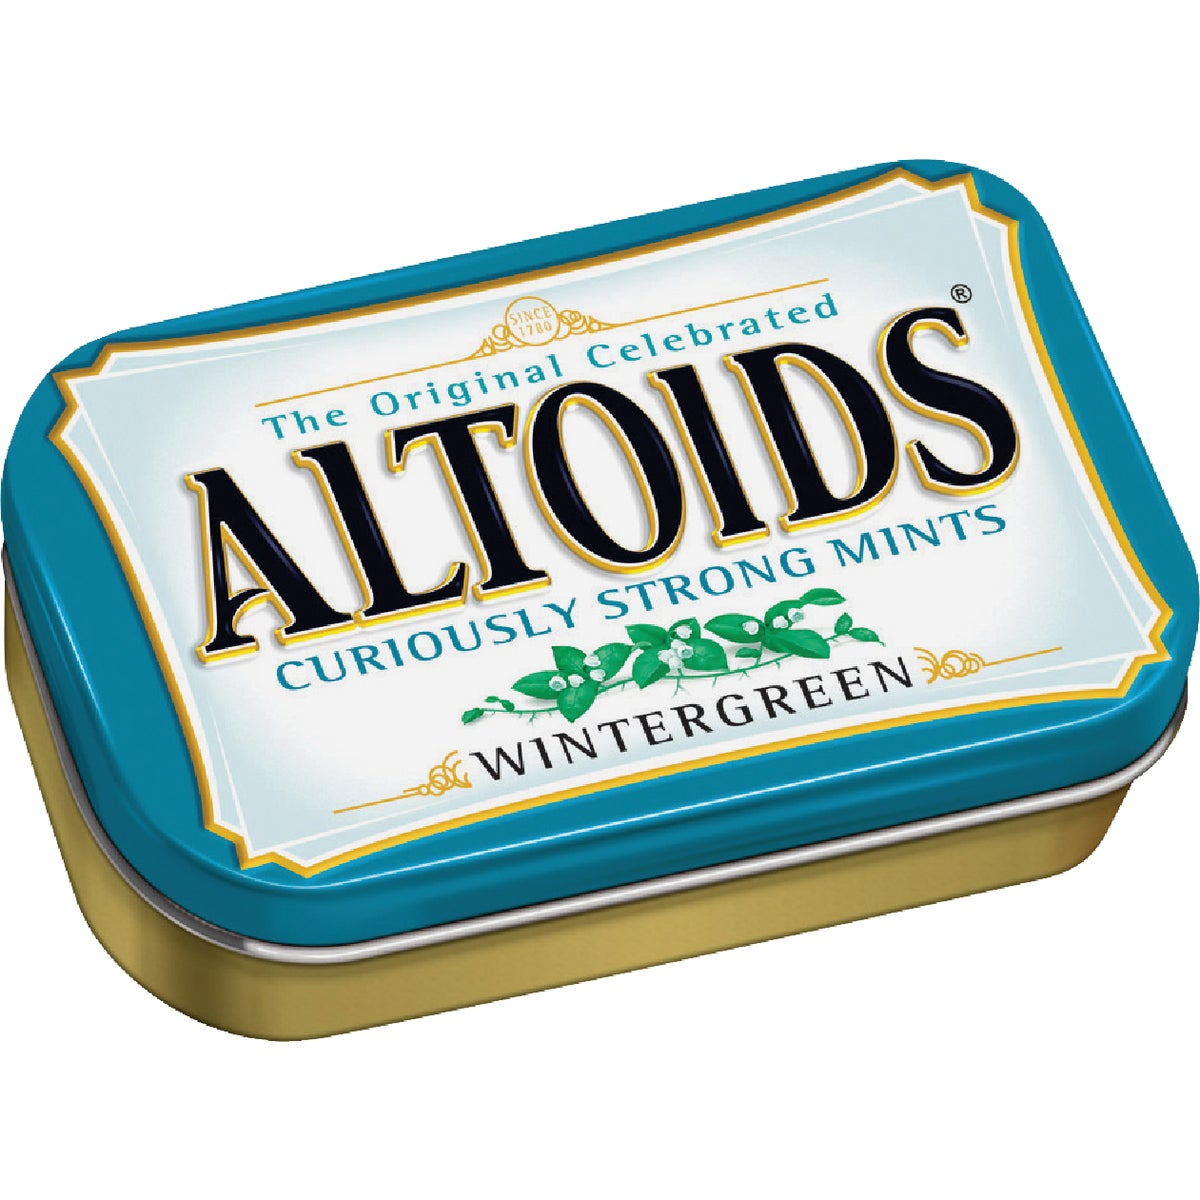 WINTERGREEN ALTOID